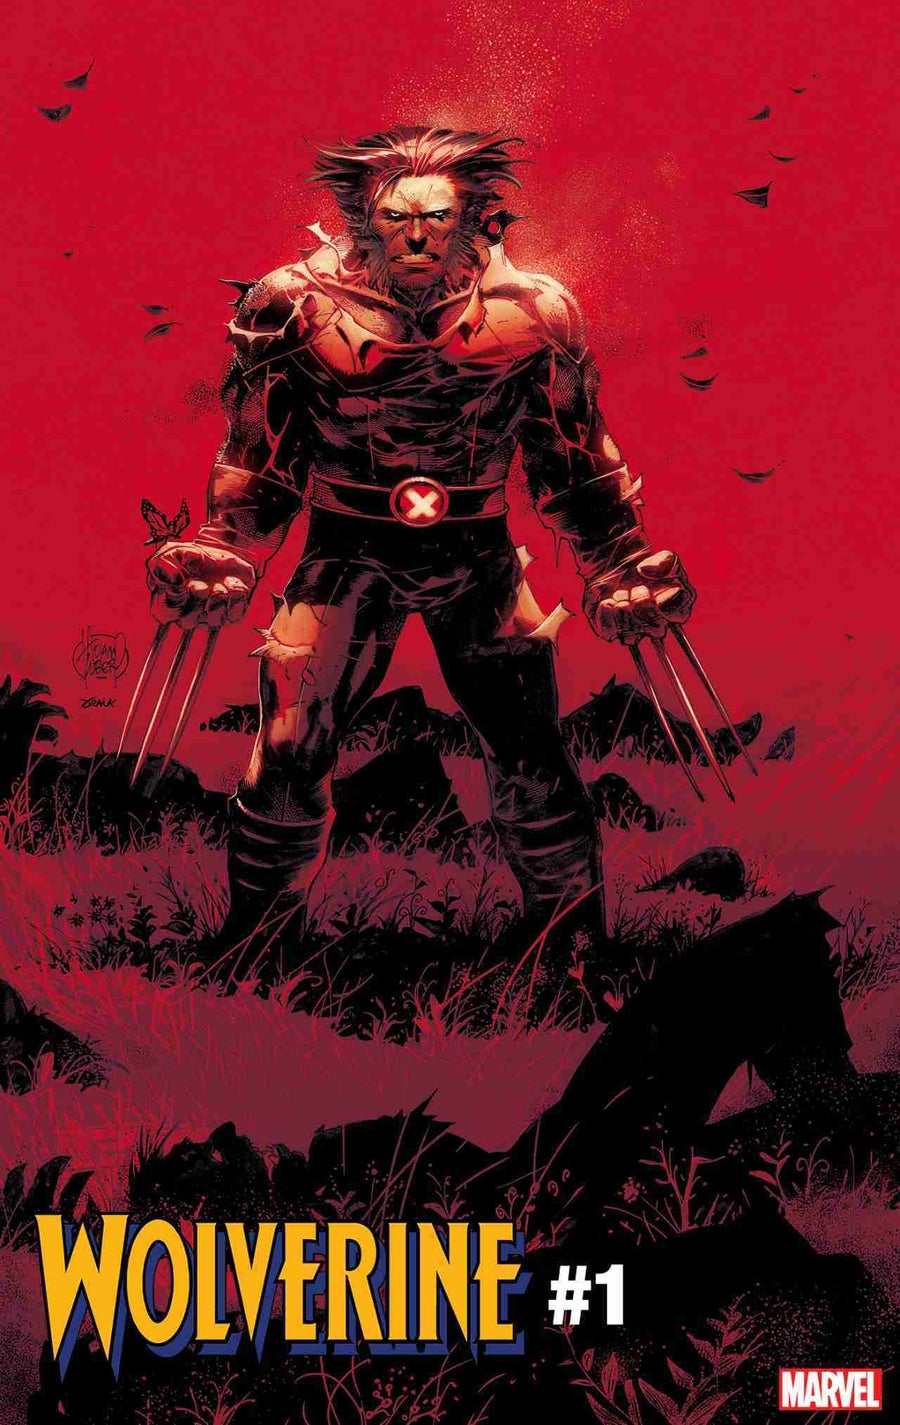 wolverine-01-cover-final-1190550